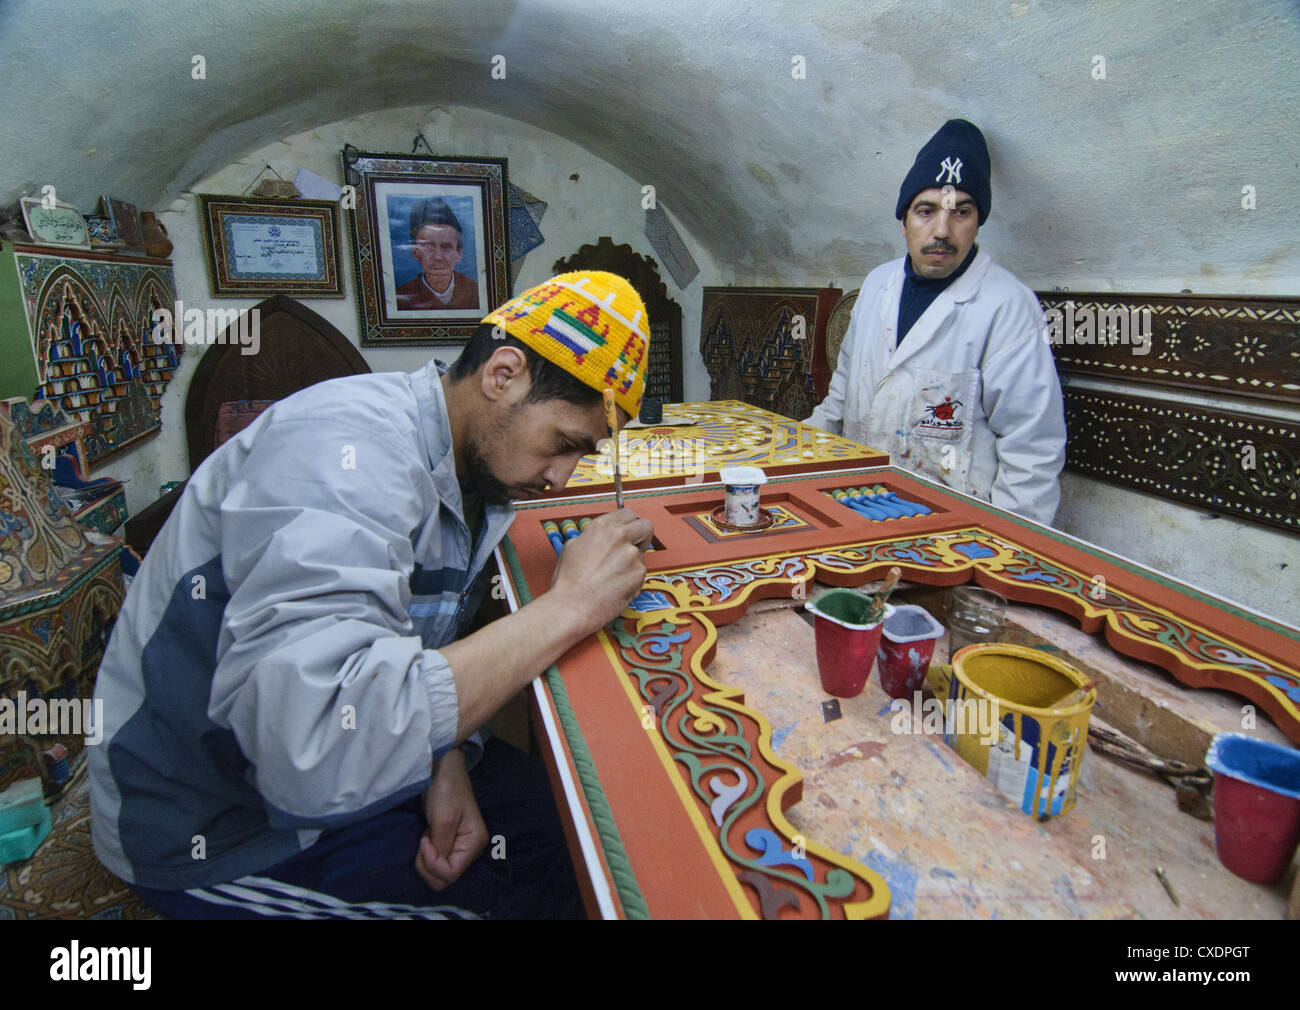 artisan painting in the ancient medina of Fes, Morocco - Stock Image